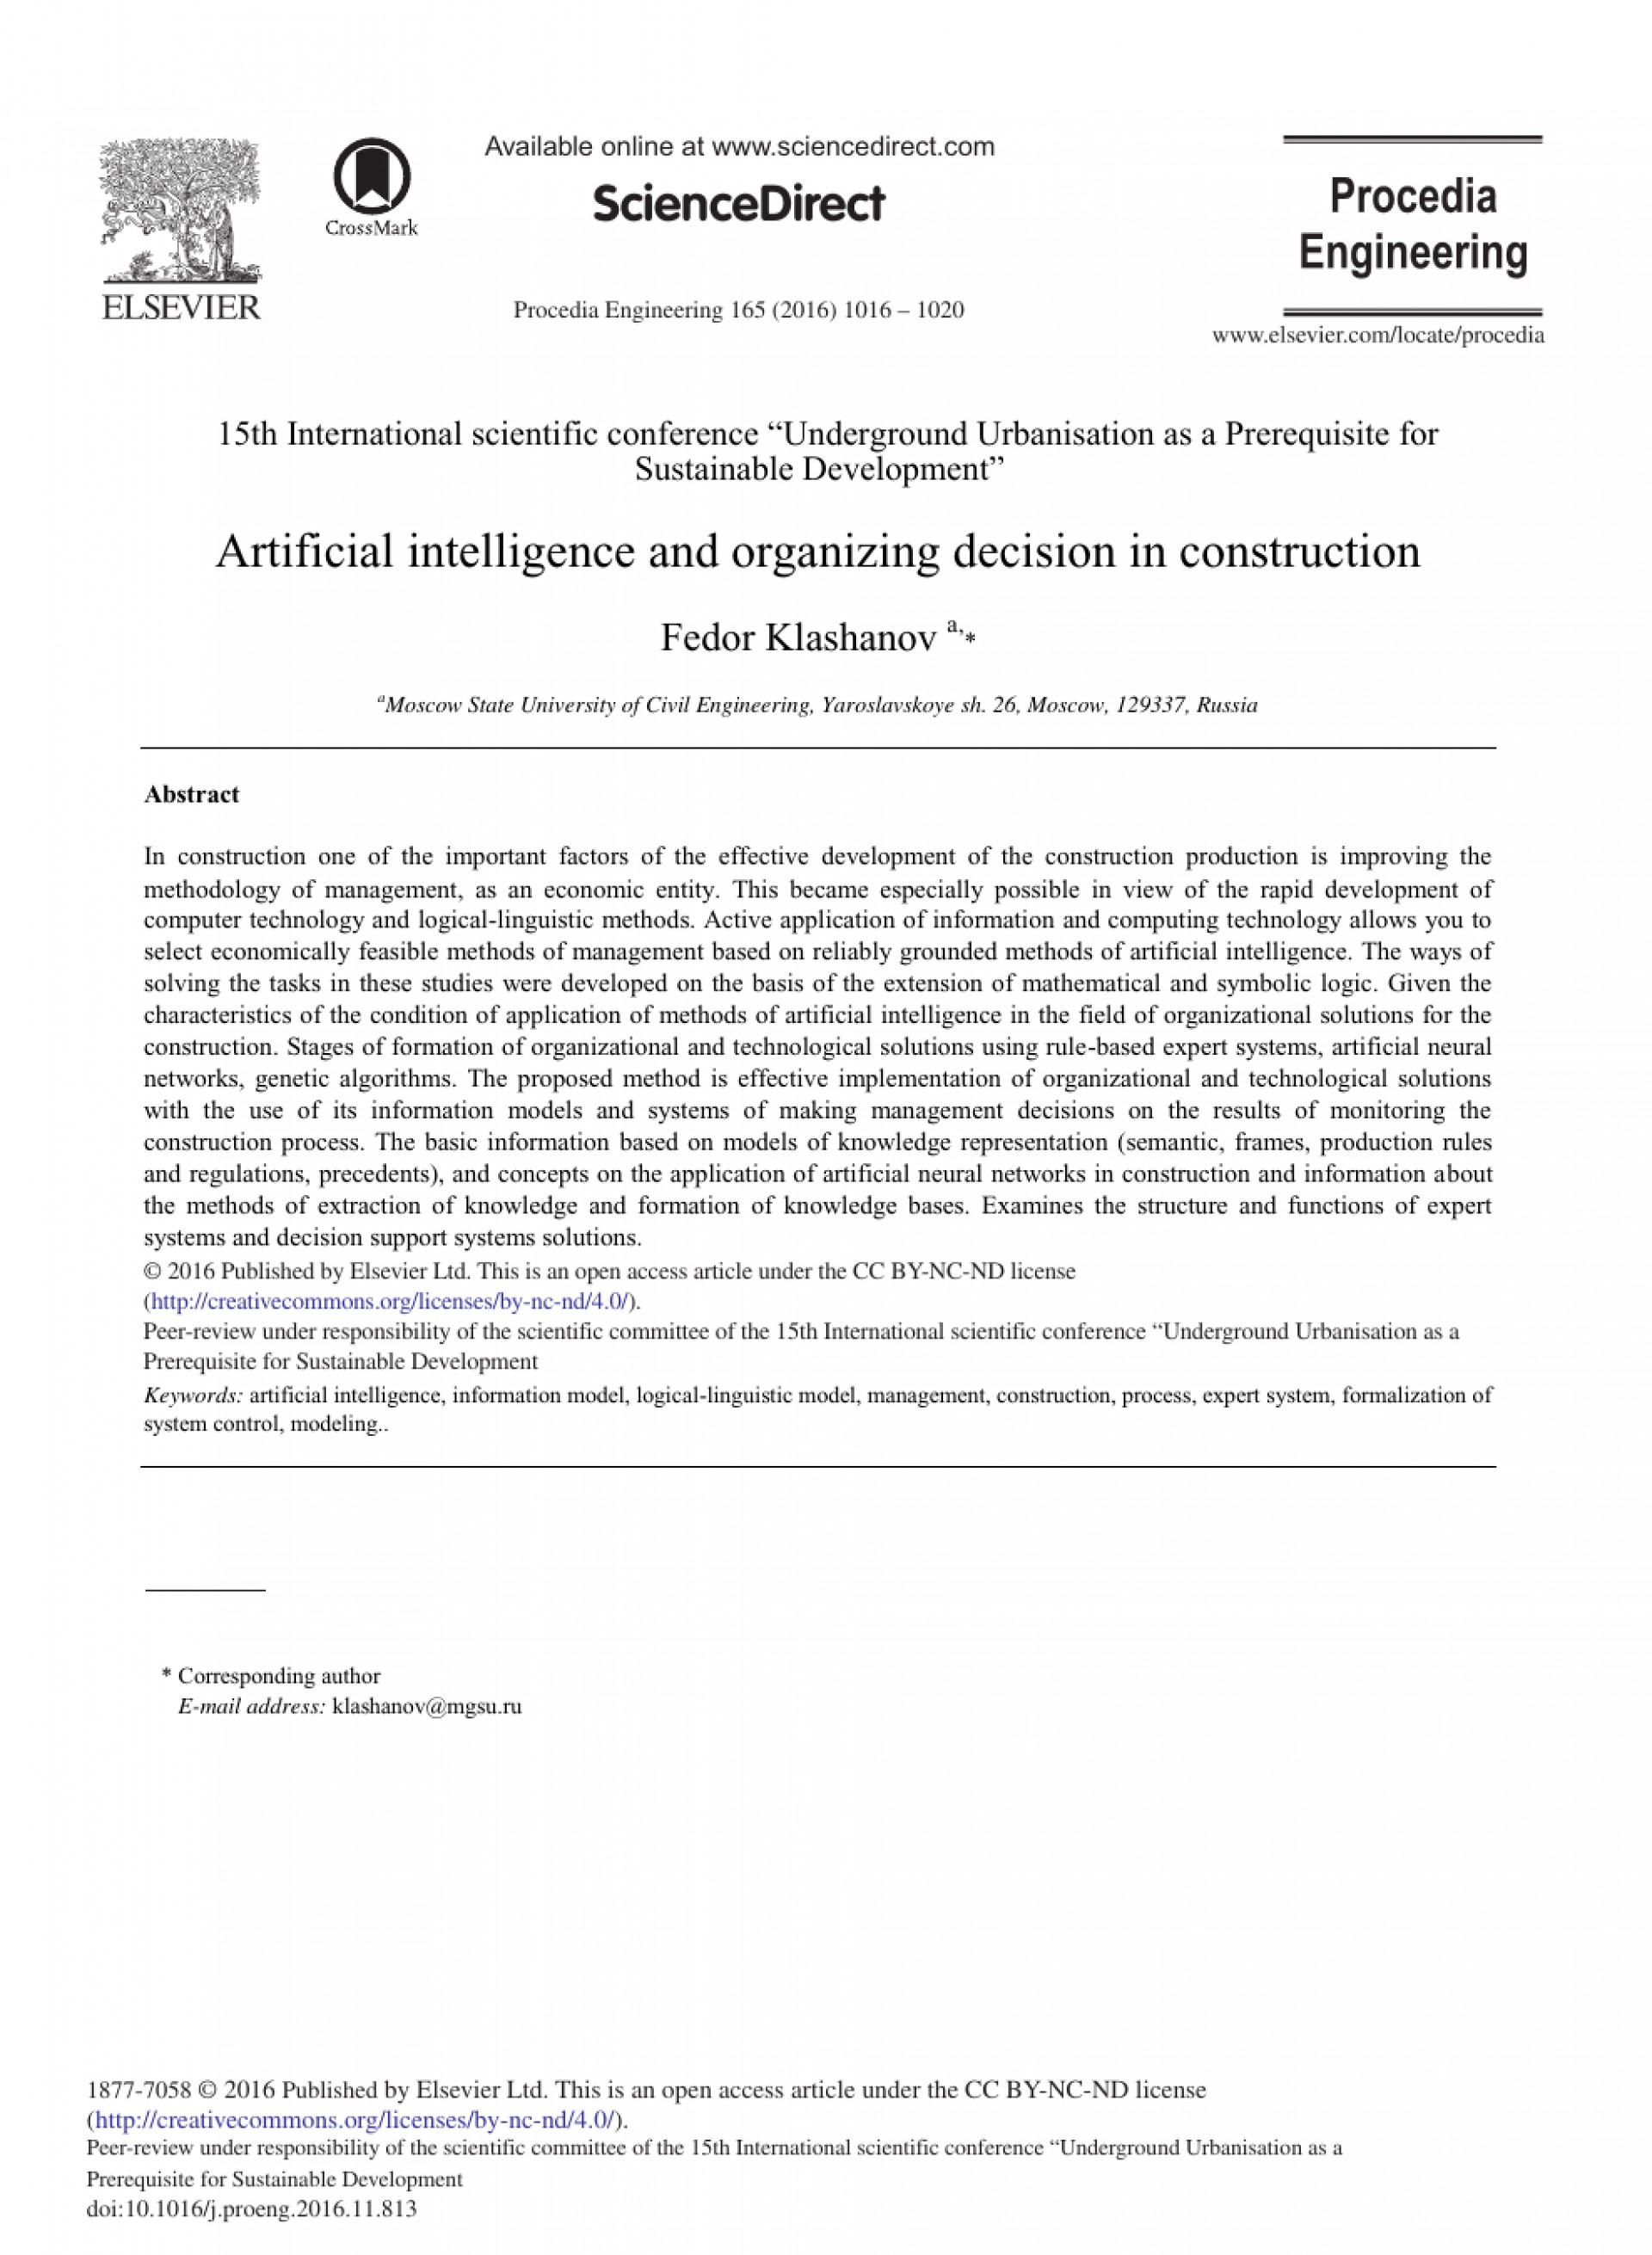 005 Artificial Intelligence Research Paper Phenomenal Ieee Ideas Topics 1920